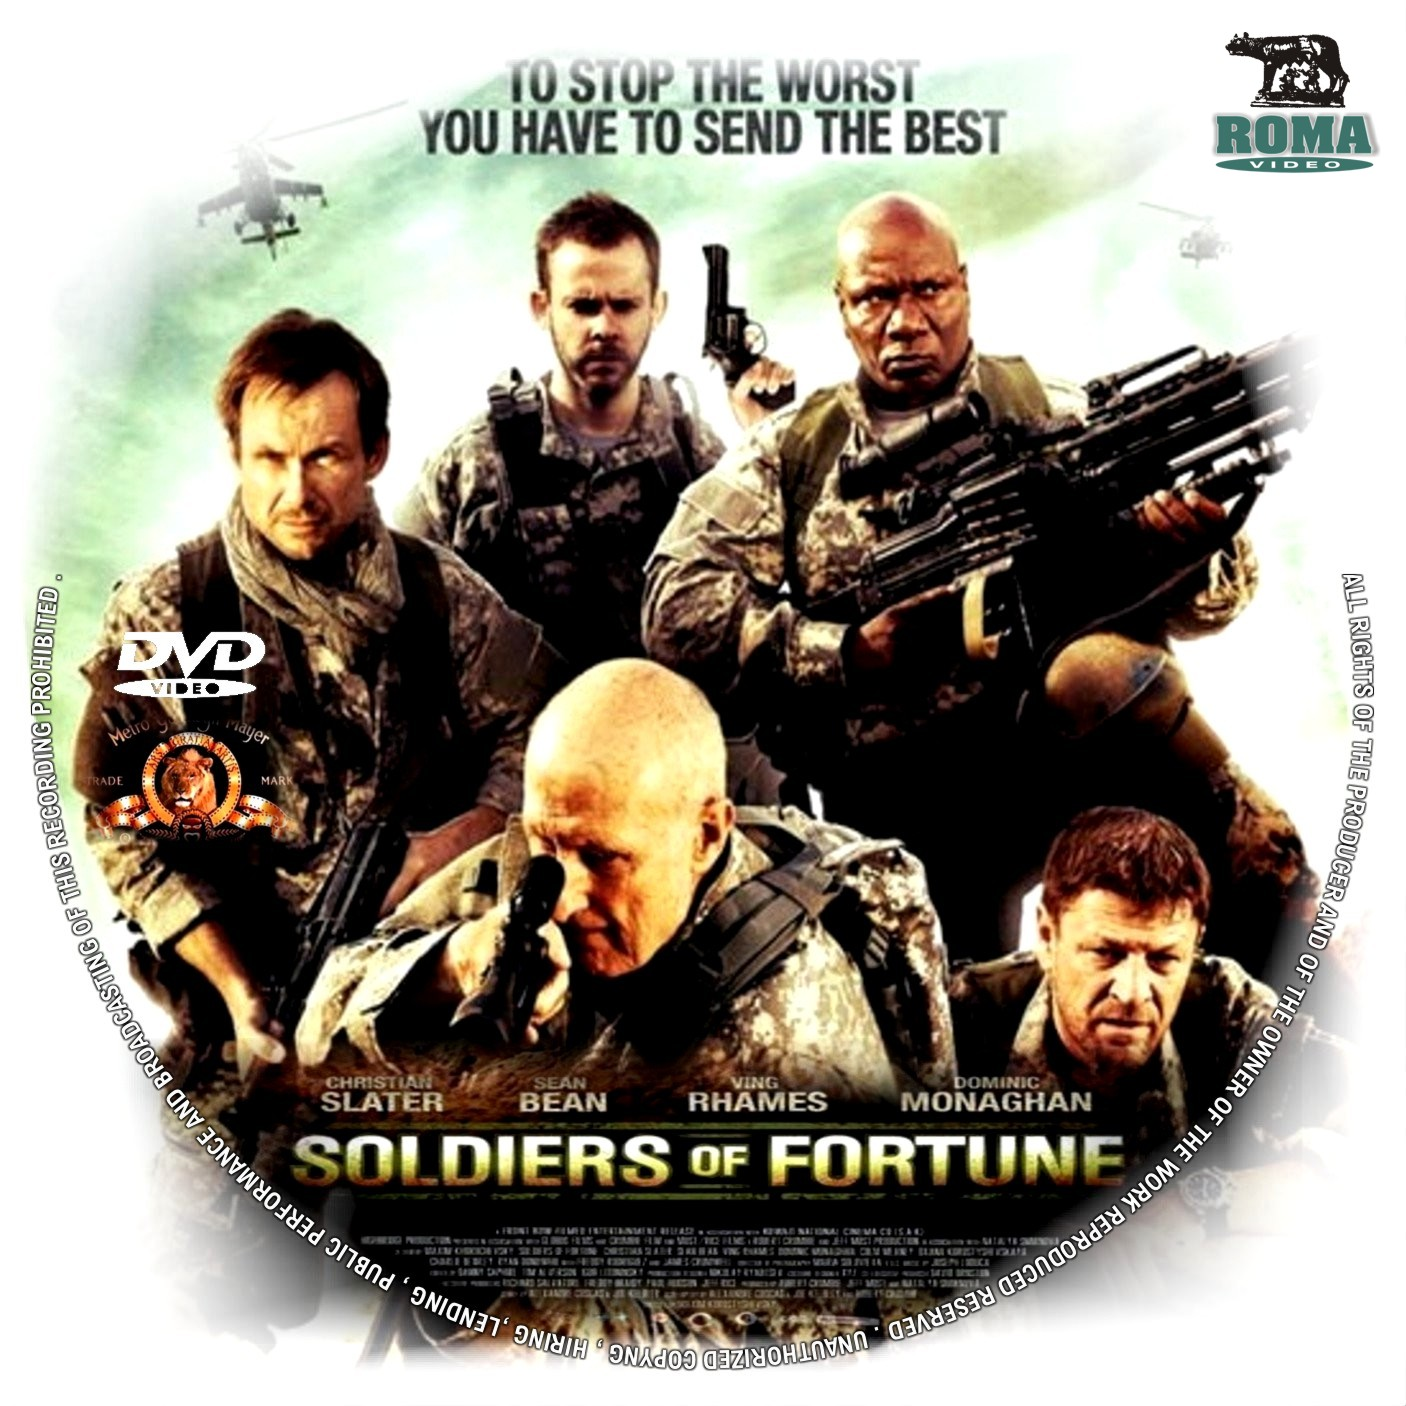 soldier of fortune movie 2012 download